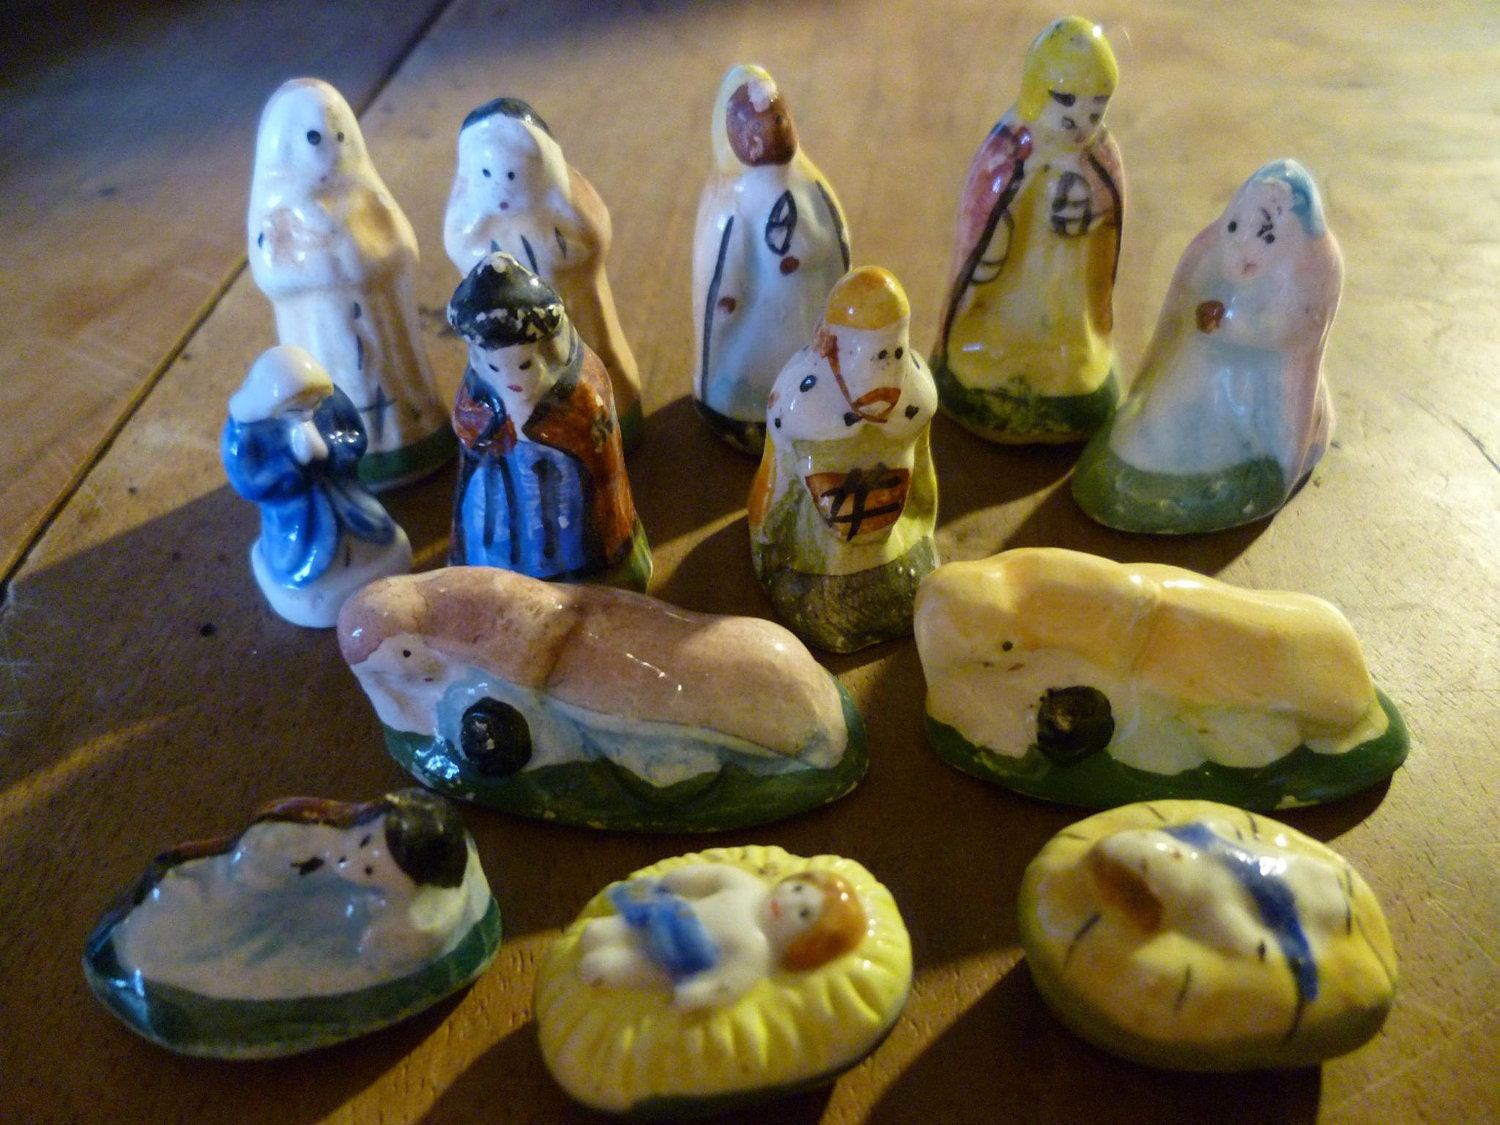 King Cake Feves Epiphany Cake Trinkets Charms People Nativity X13